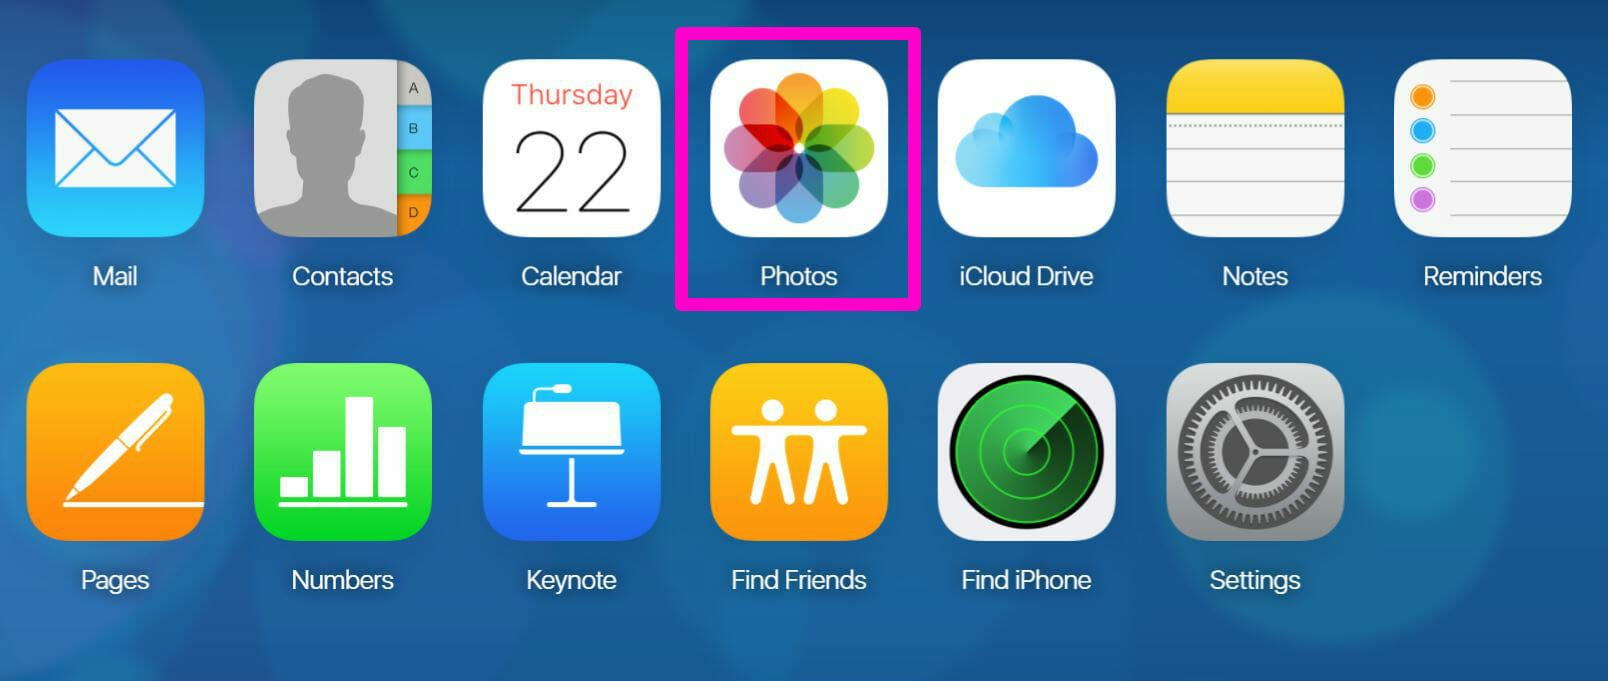 How to download photos from iCloud on Mac